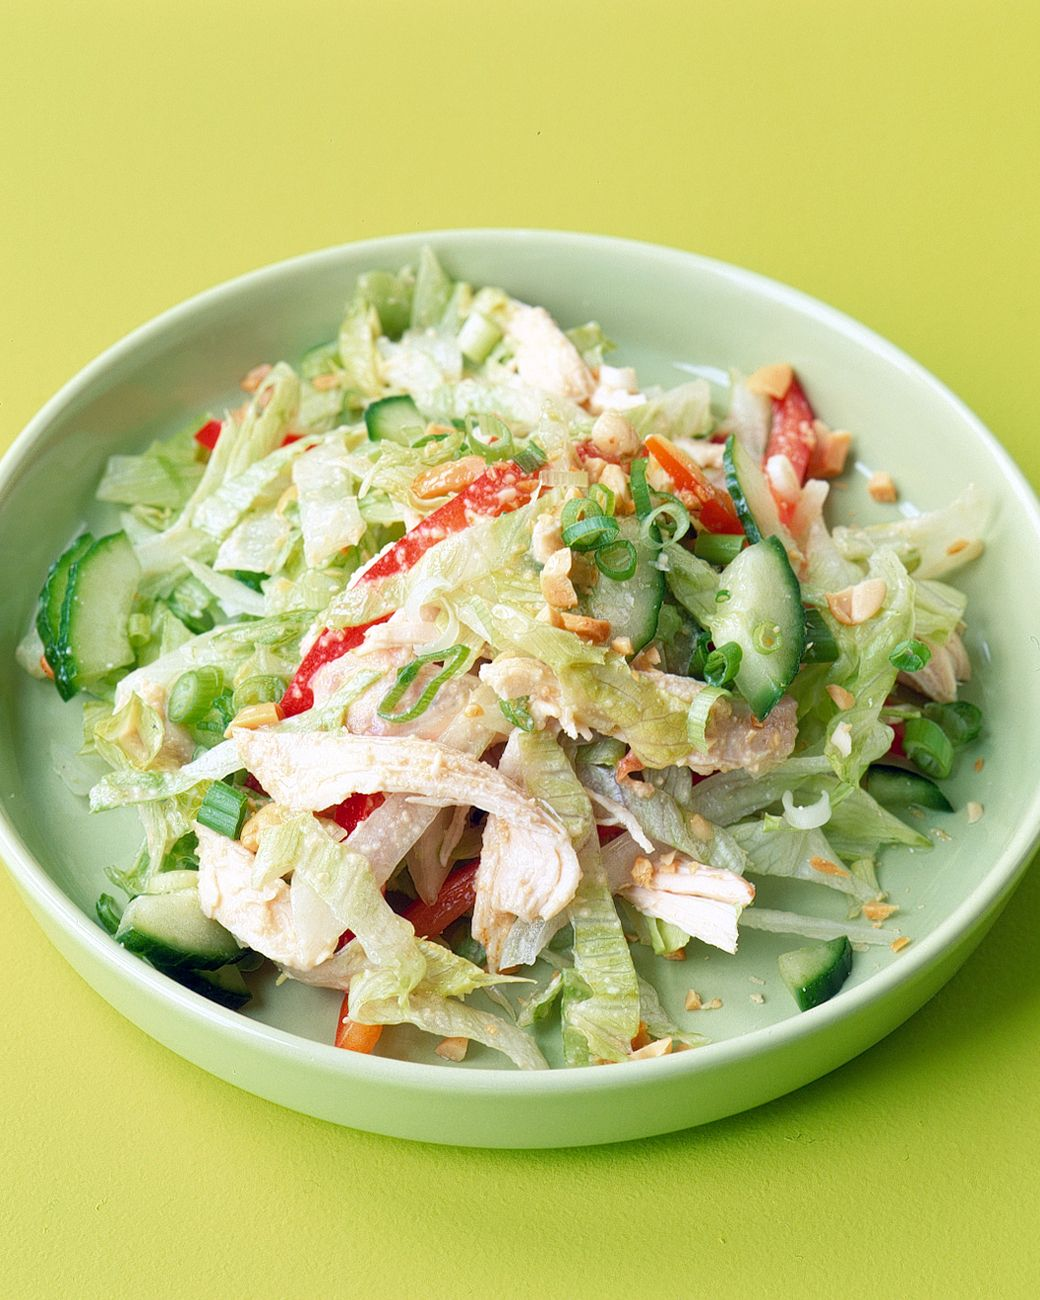 With a few extra ingredients, this simple salad goes from light to hearty, but still healthy.